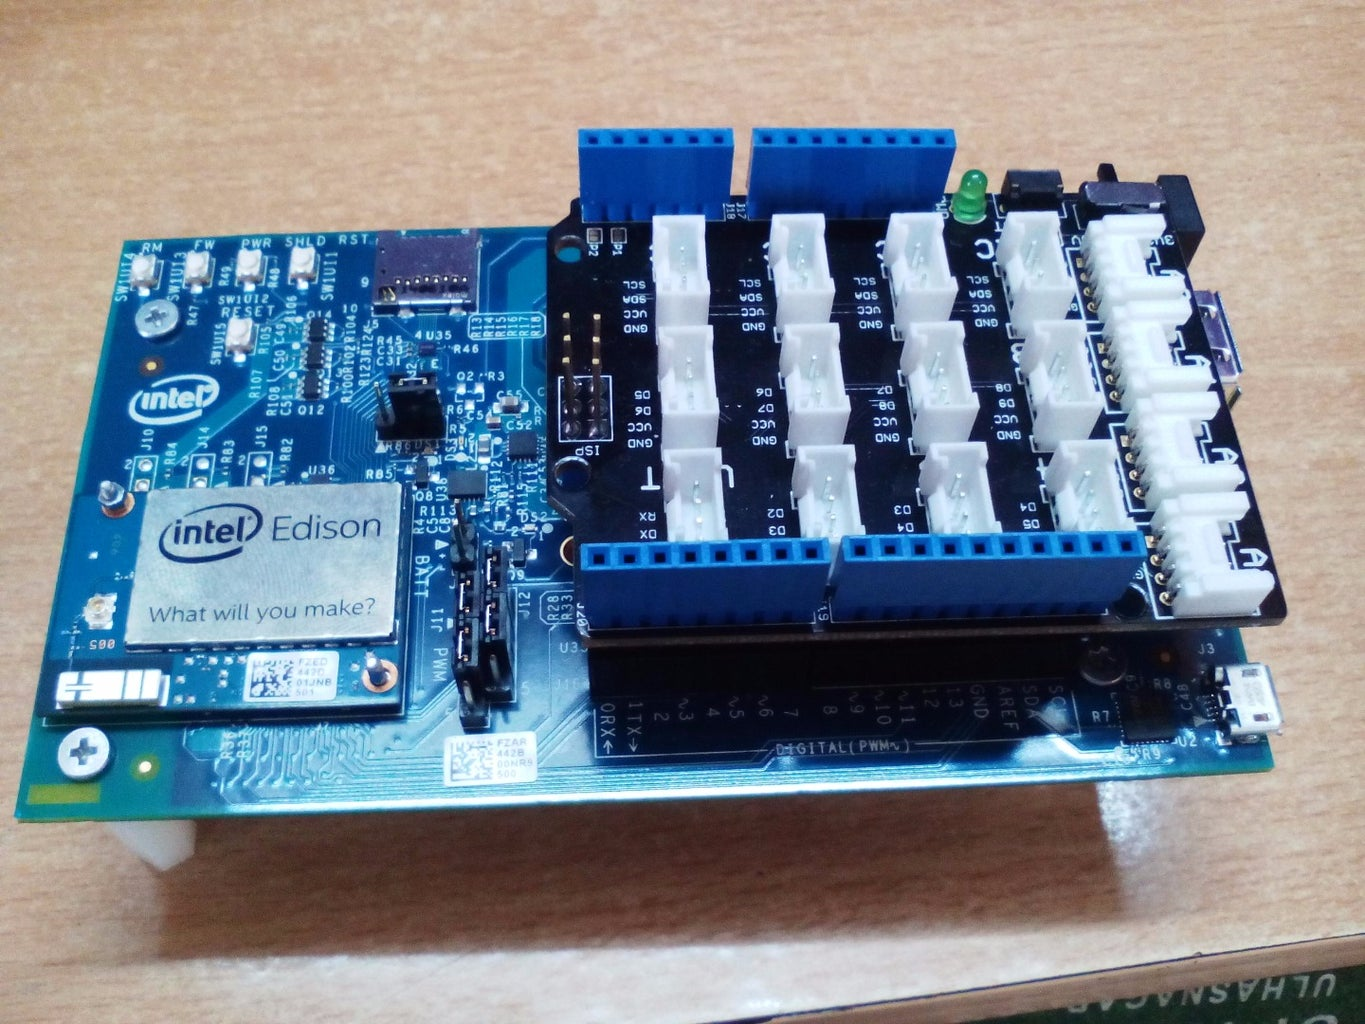 Connect the Base Shield to Intel Edison